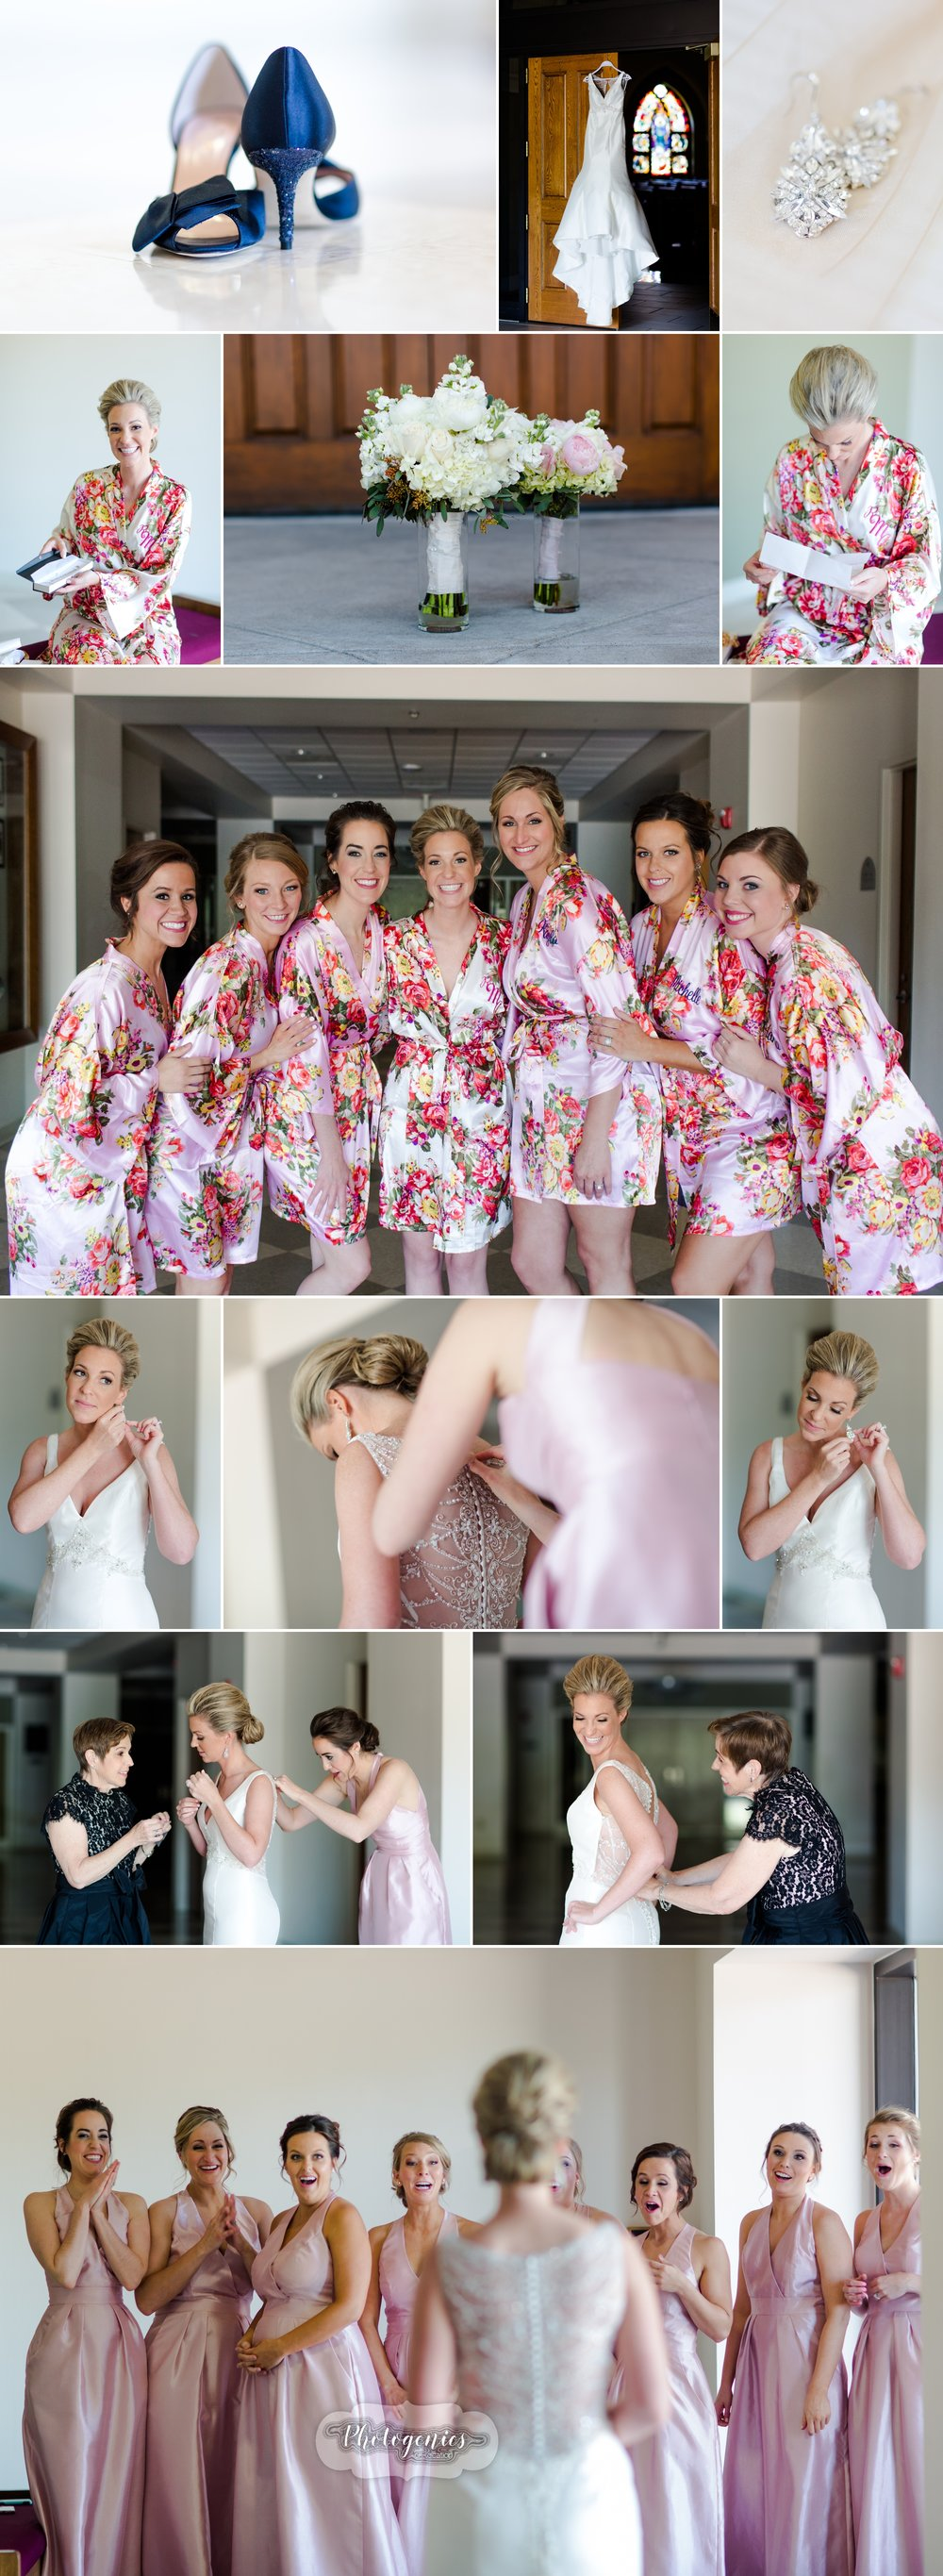 bride_groom_spring_may_wedding_photography_bride_getting_ready_details_must_have_wedding_day_shots